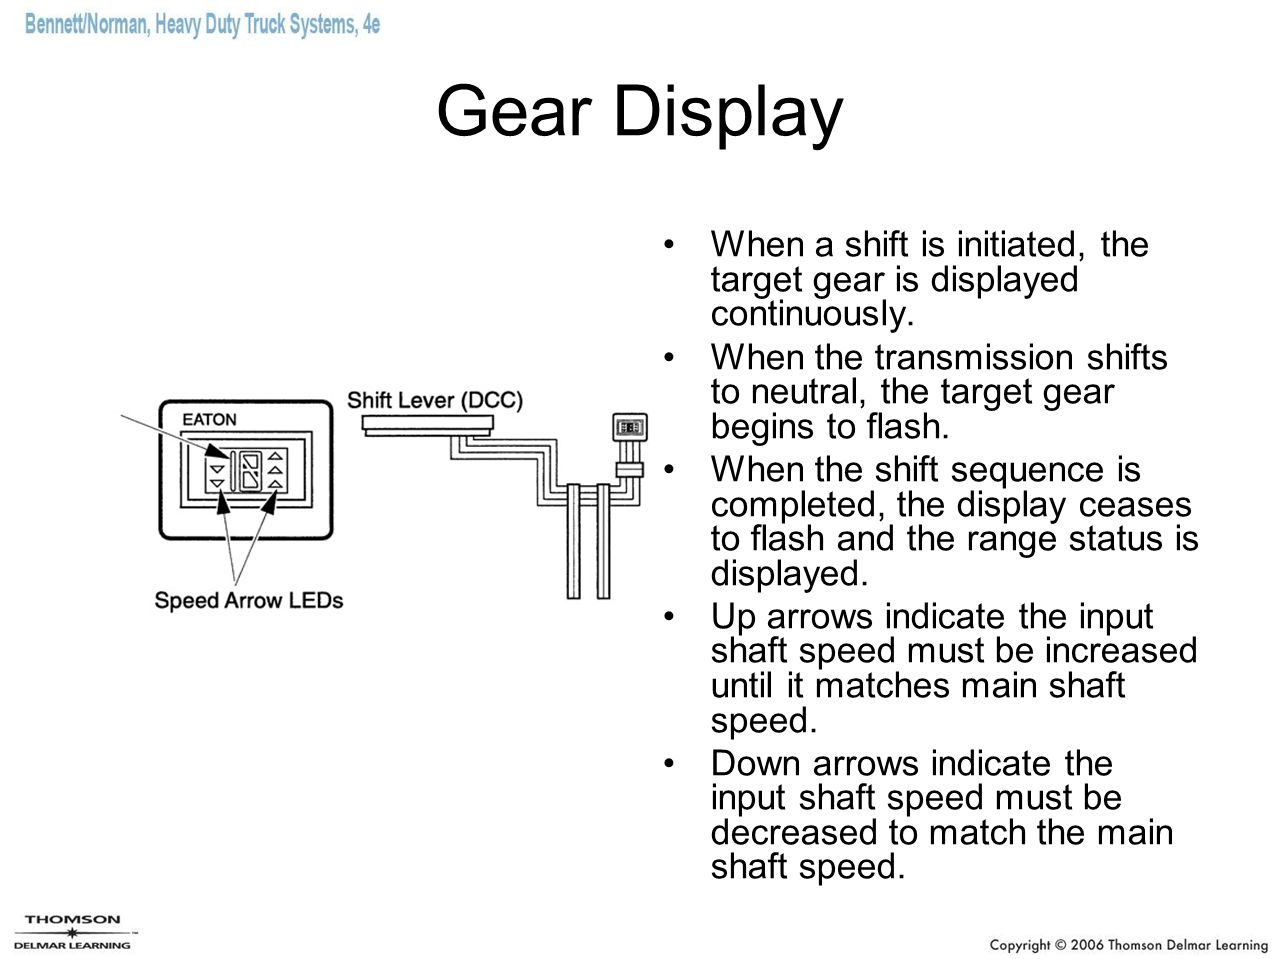 Gear Display When a shift is initiated, the target gear is displayed continuously. When the transmission shifts to neutral, the target gear begins to